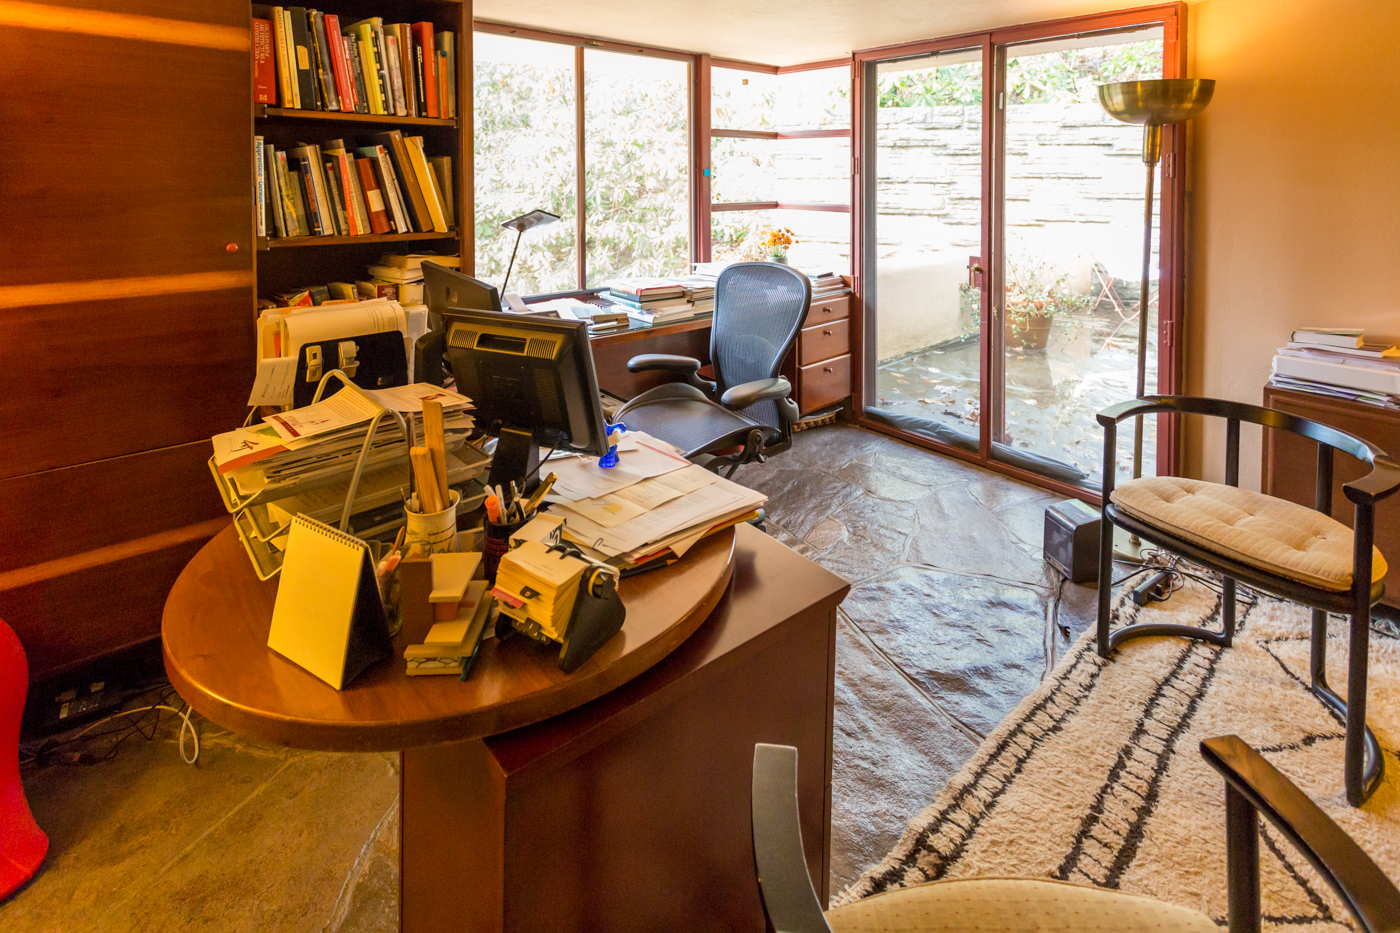 Guest house office space